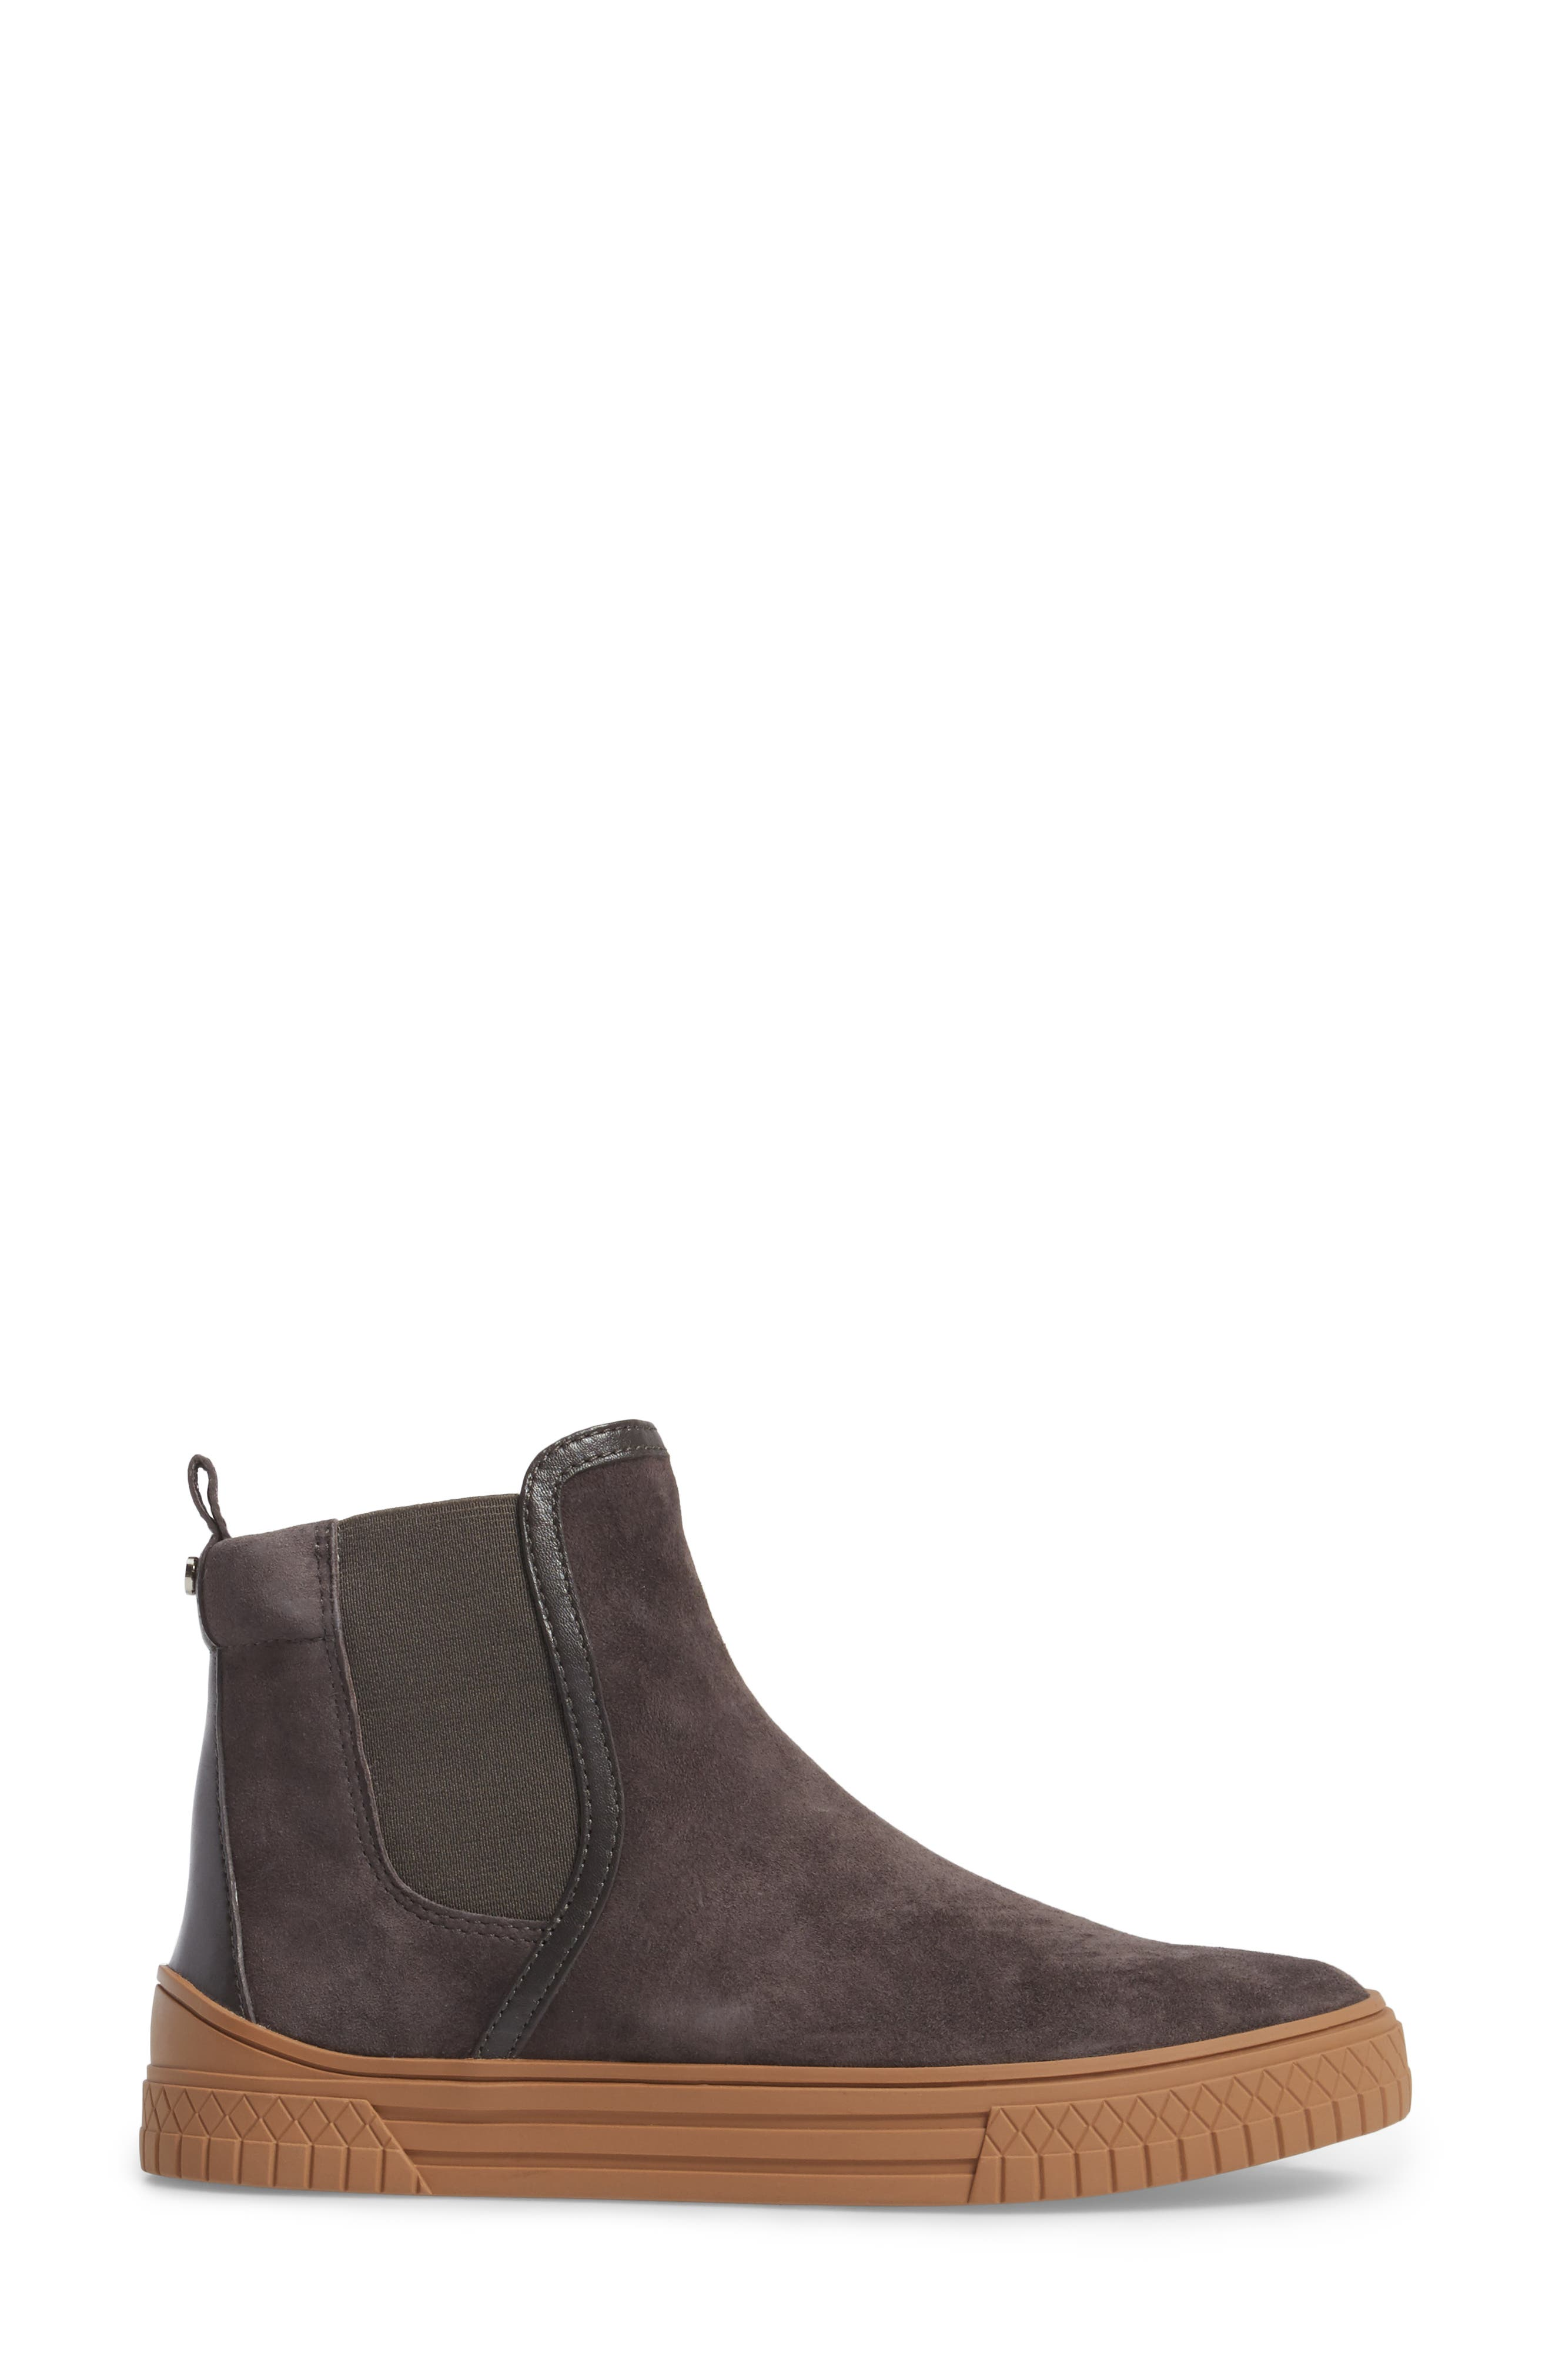 Alternate Image 3  - Linea Paolo Gage Chelsea Boot (Women)